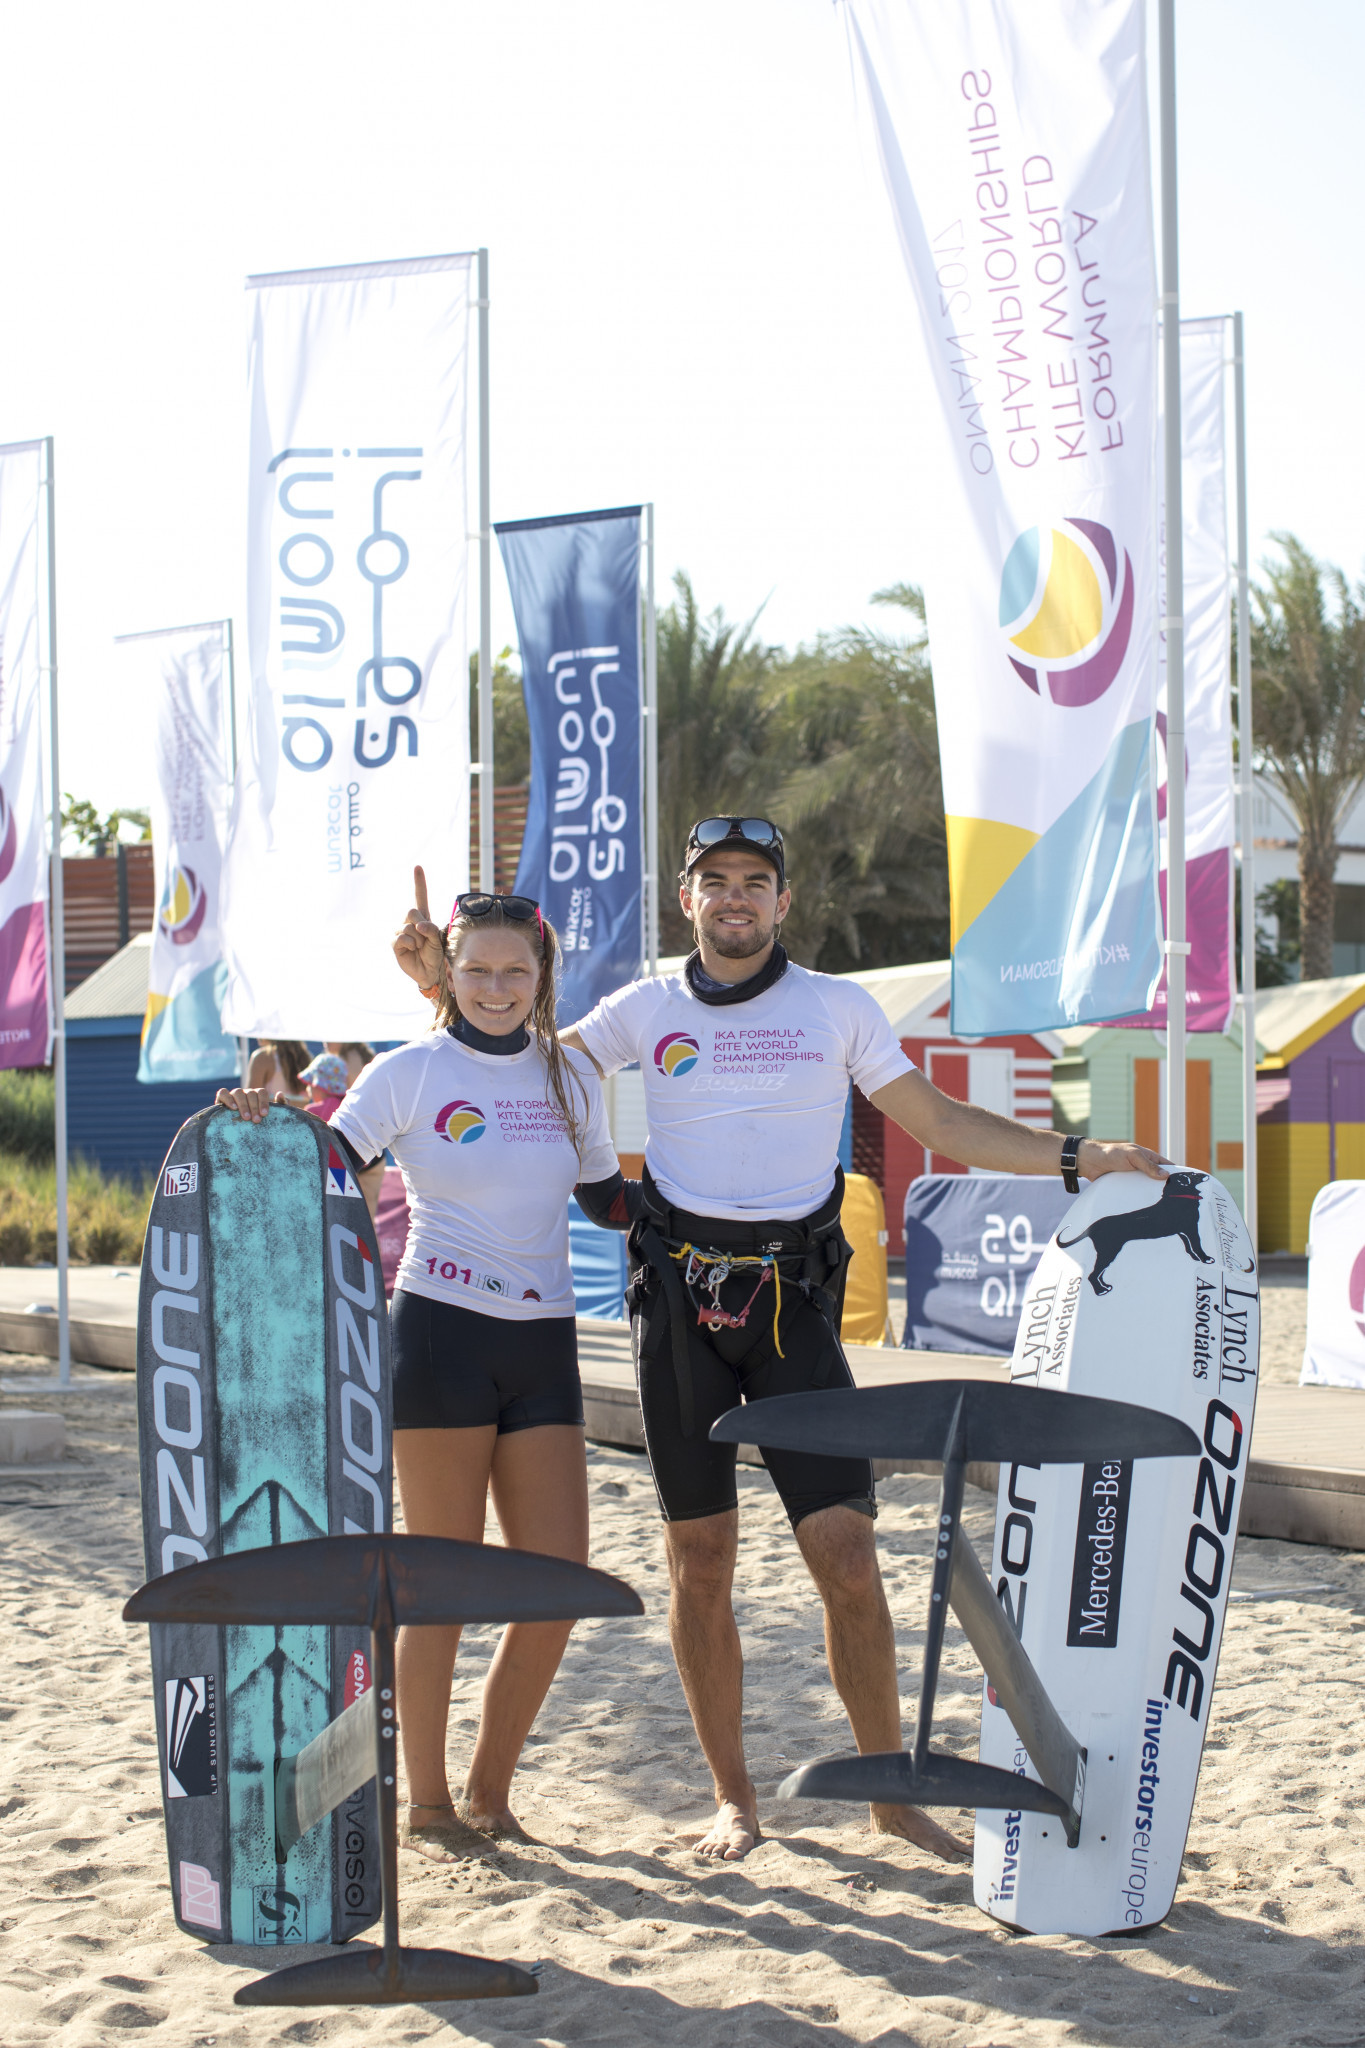 Nico Parlier and Daniela Moroz were crowned champions of the IKA Formula Kite World Championships after dominant displays throughout the week ©IKA Formula Kite World Championships